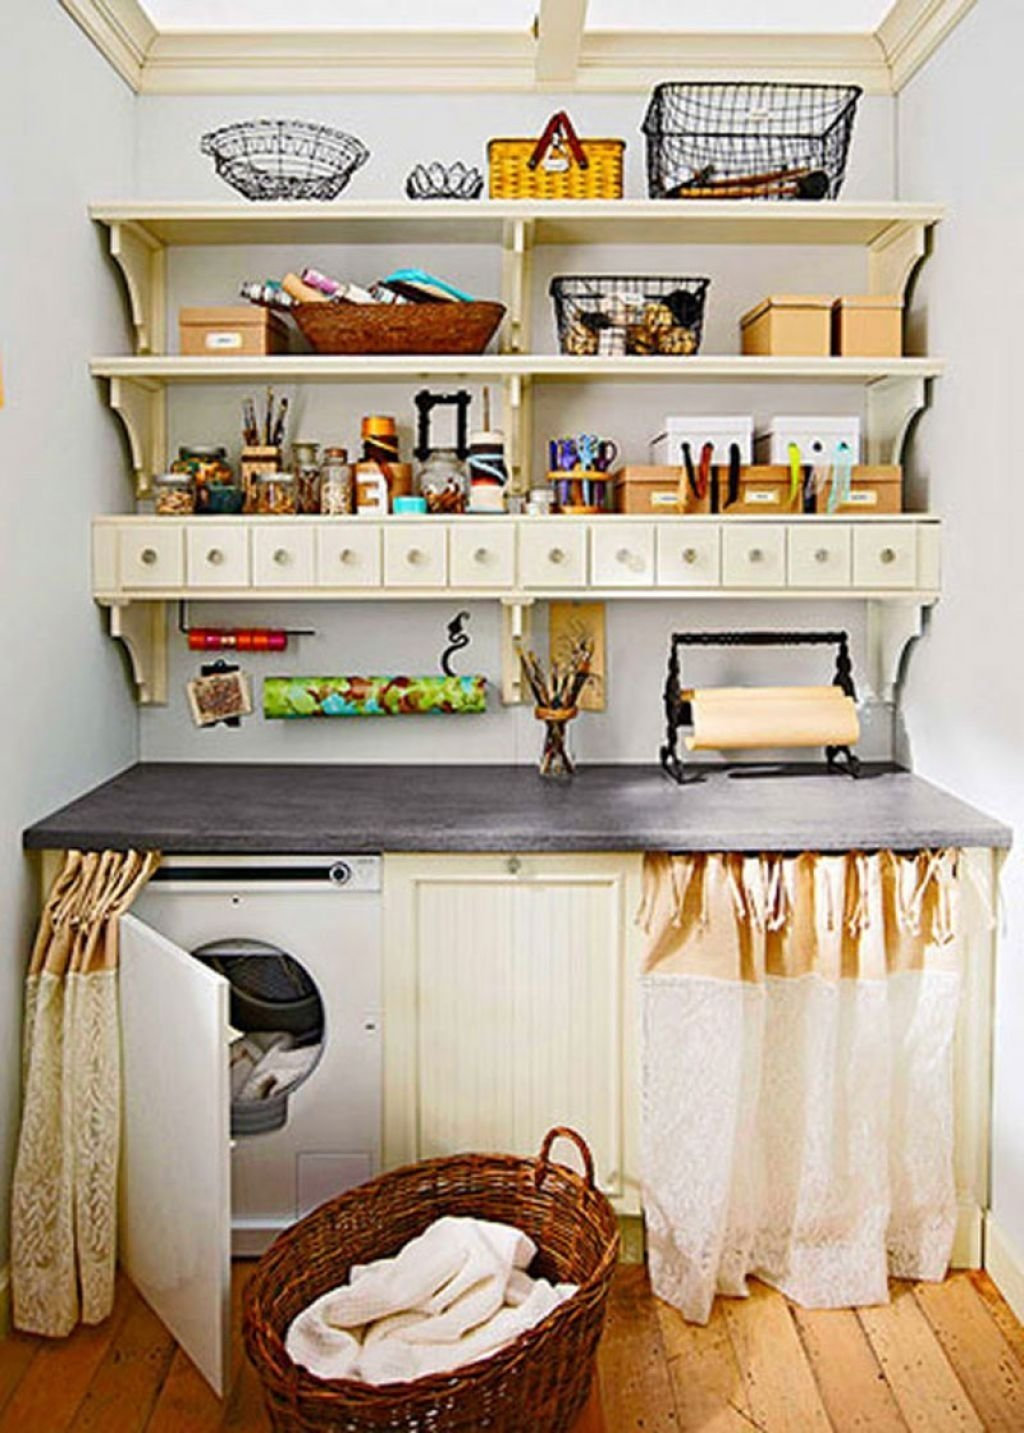 kitchen : storage ideas for small kitchen cabinets clever, kitchen